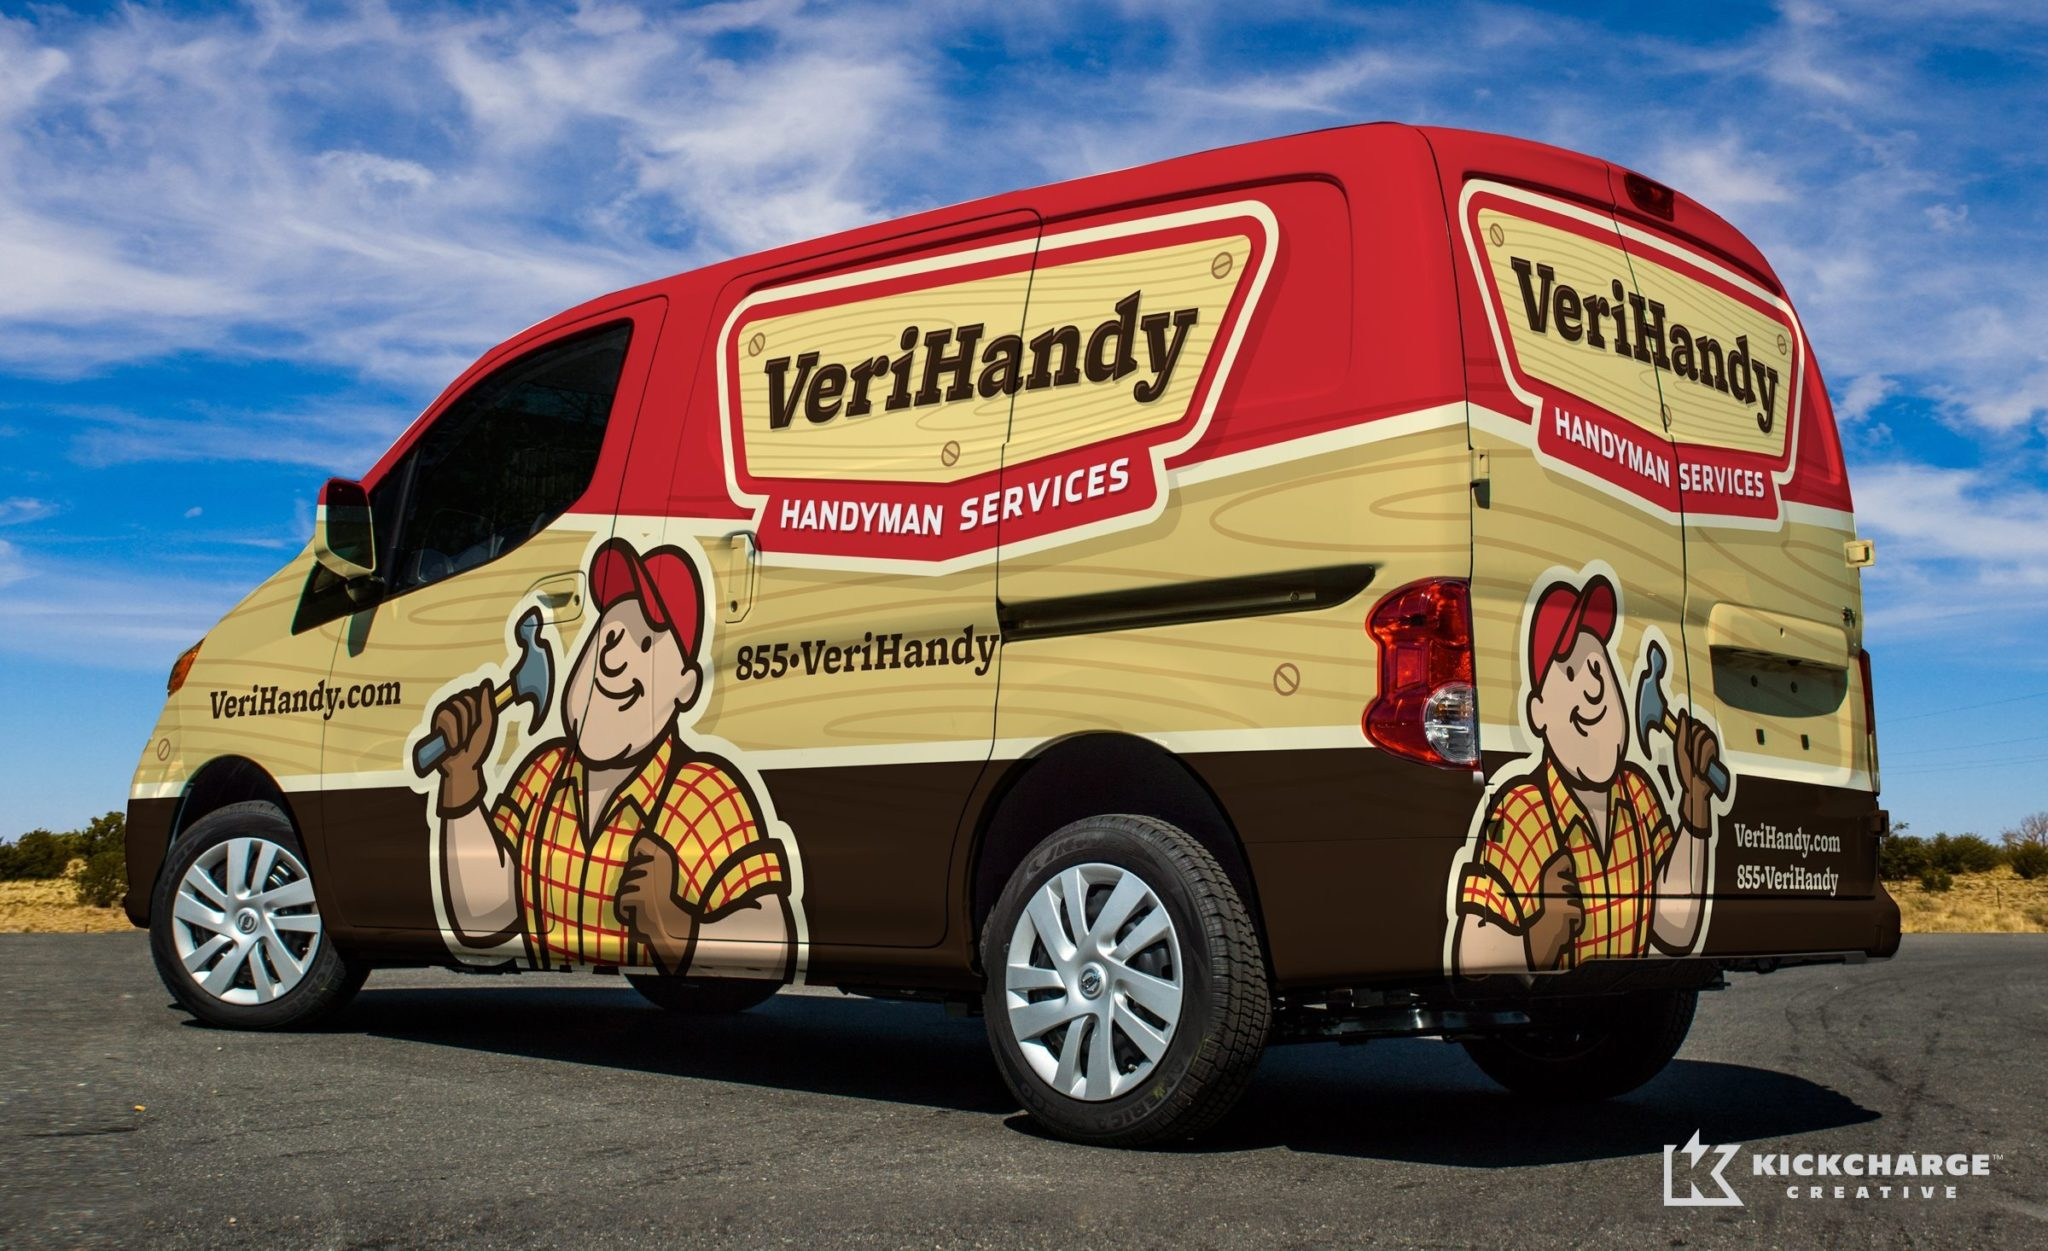 verihandy handyman services kickcharge creative